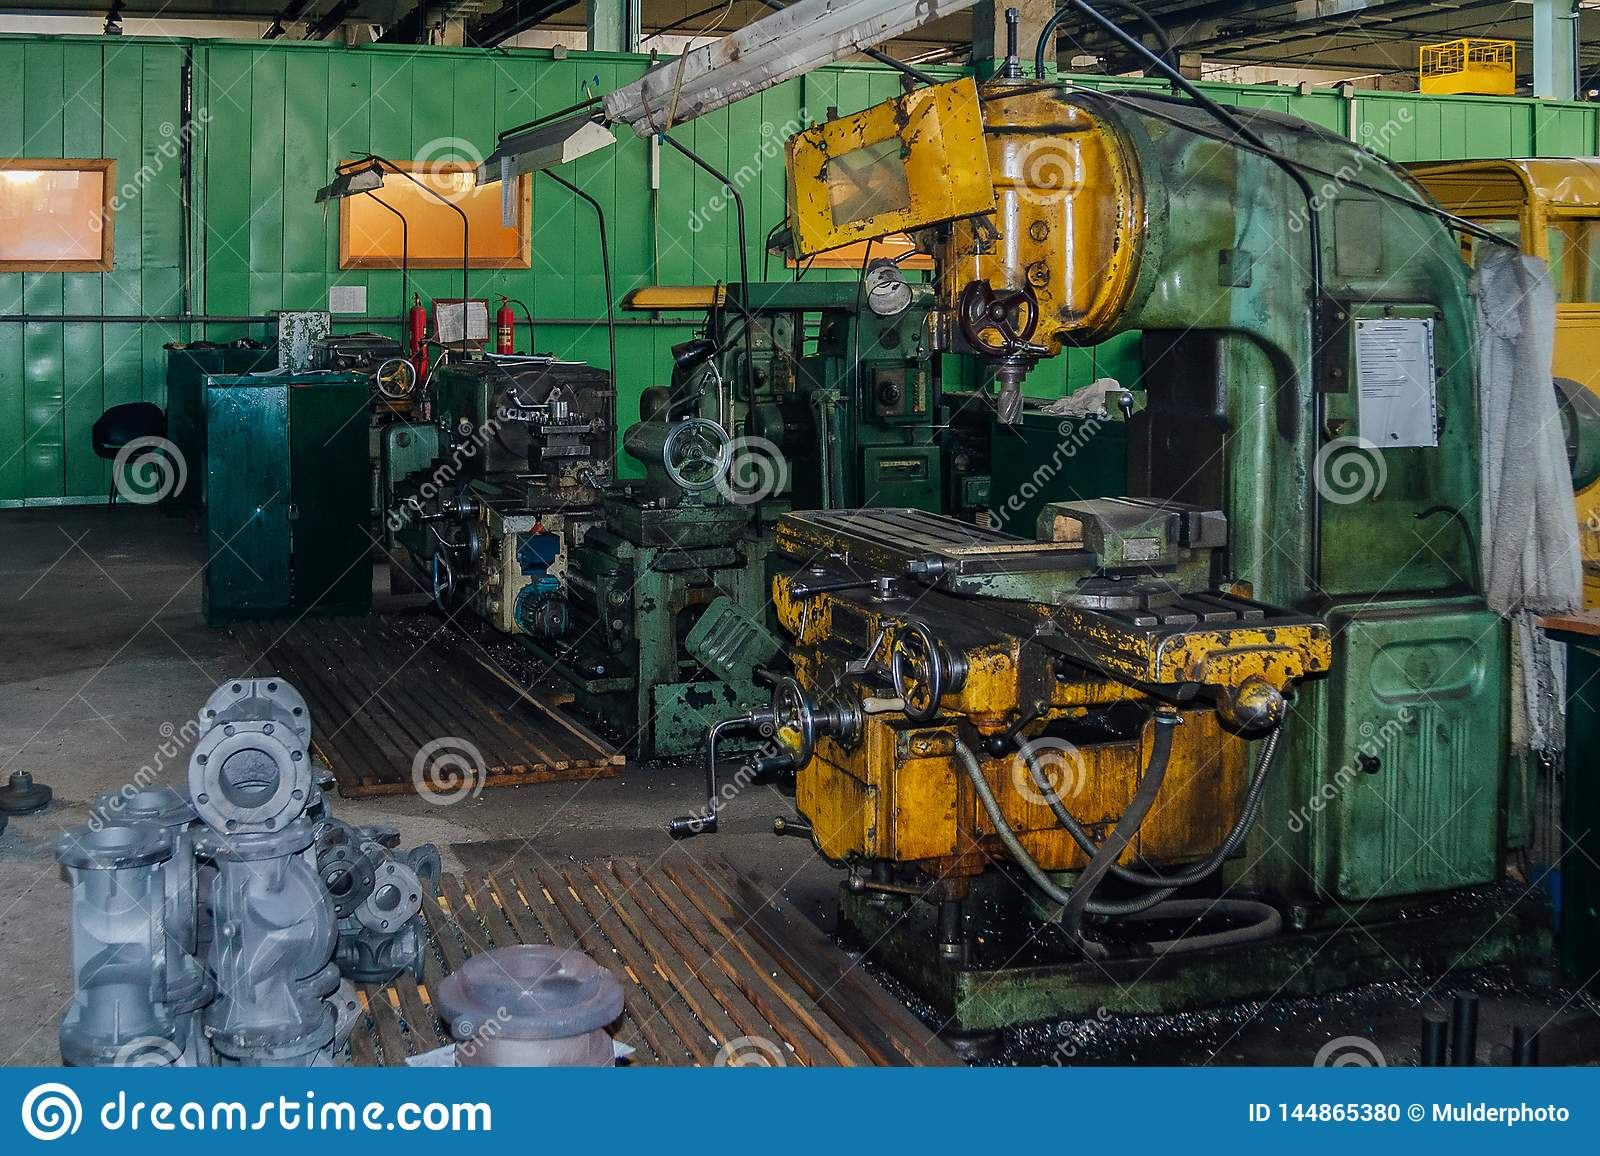 Industrial Turning And Drilling Machine Tools In Factory